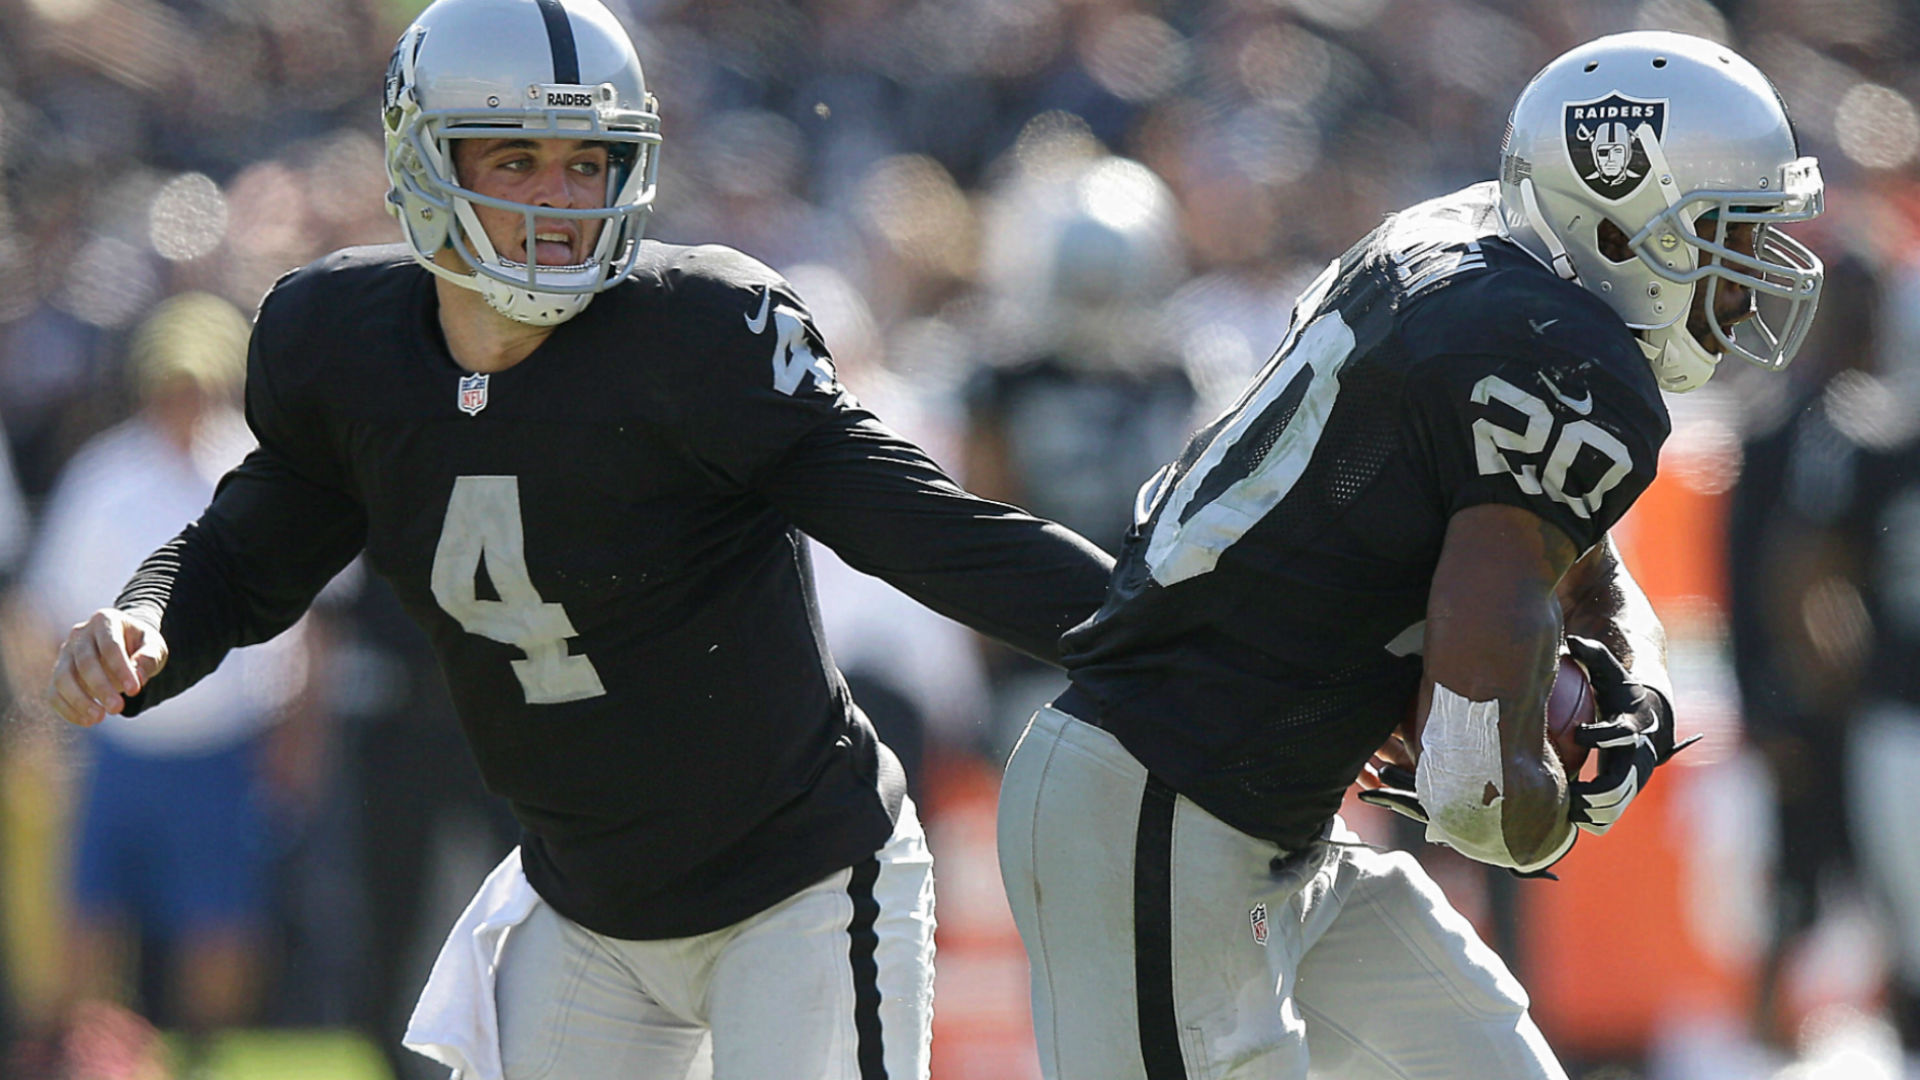 Thursday night action report – Raiders money to be had at +7.5